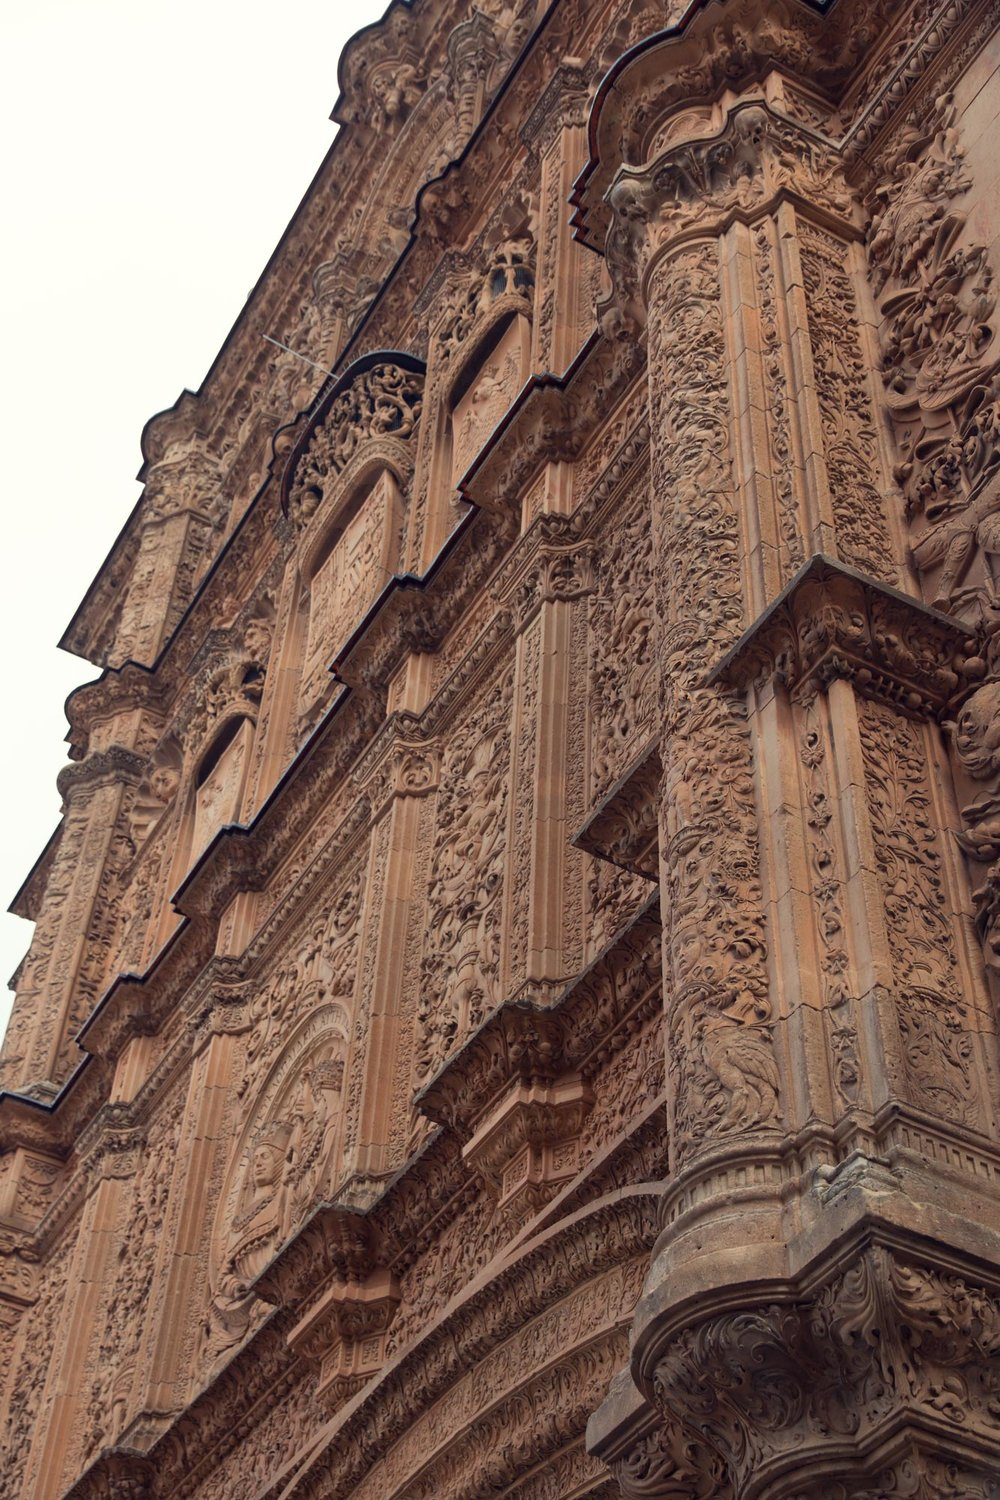 The detail in the stone work is ridiculous!